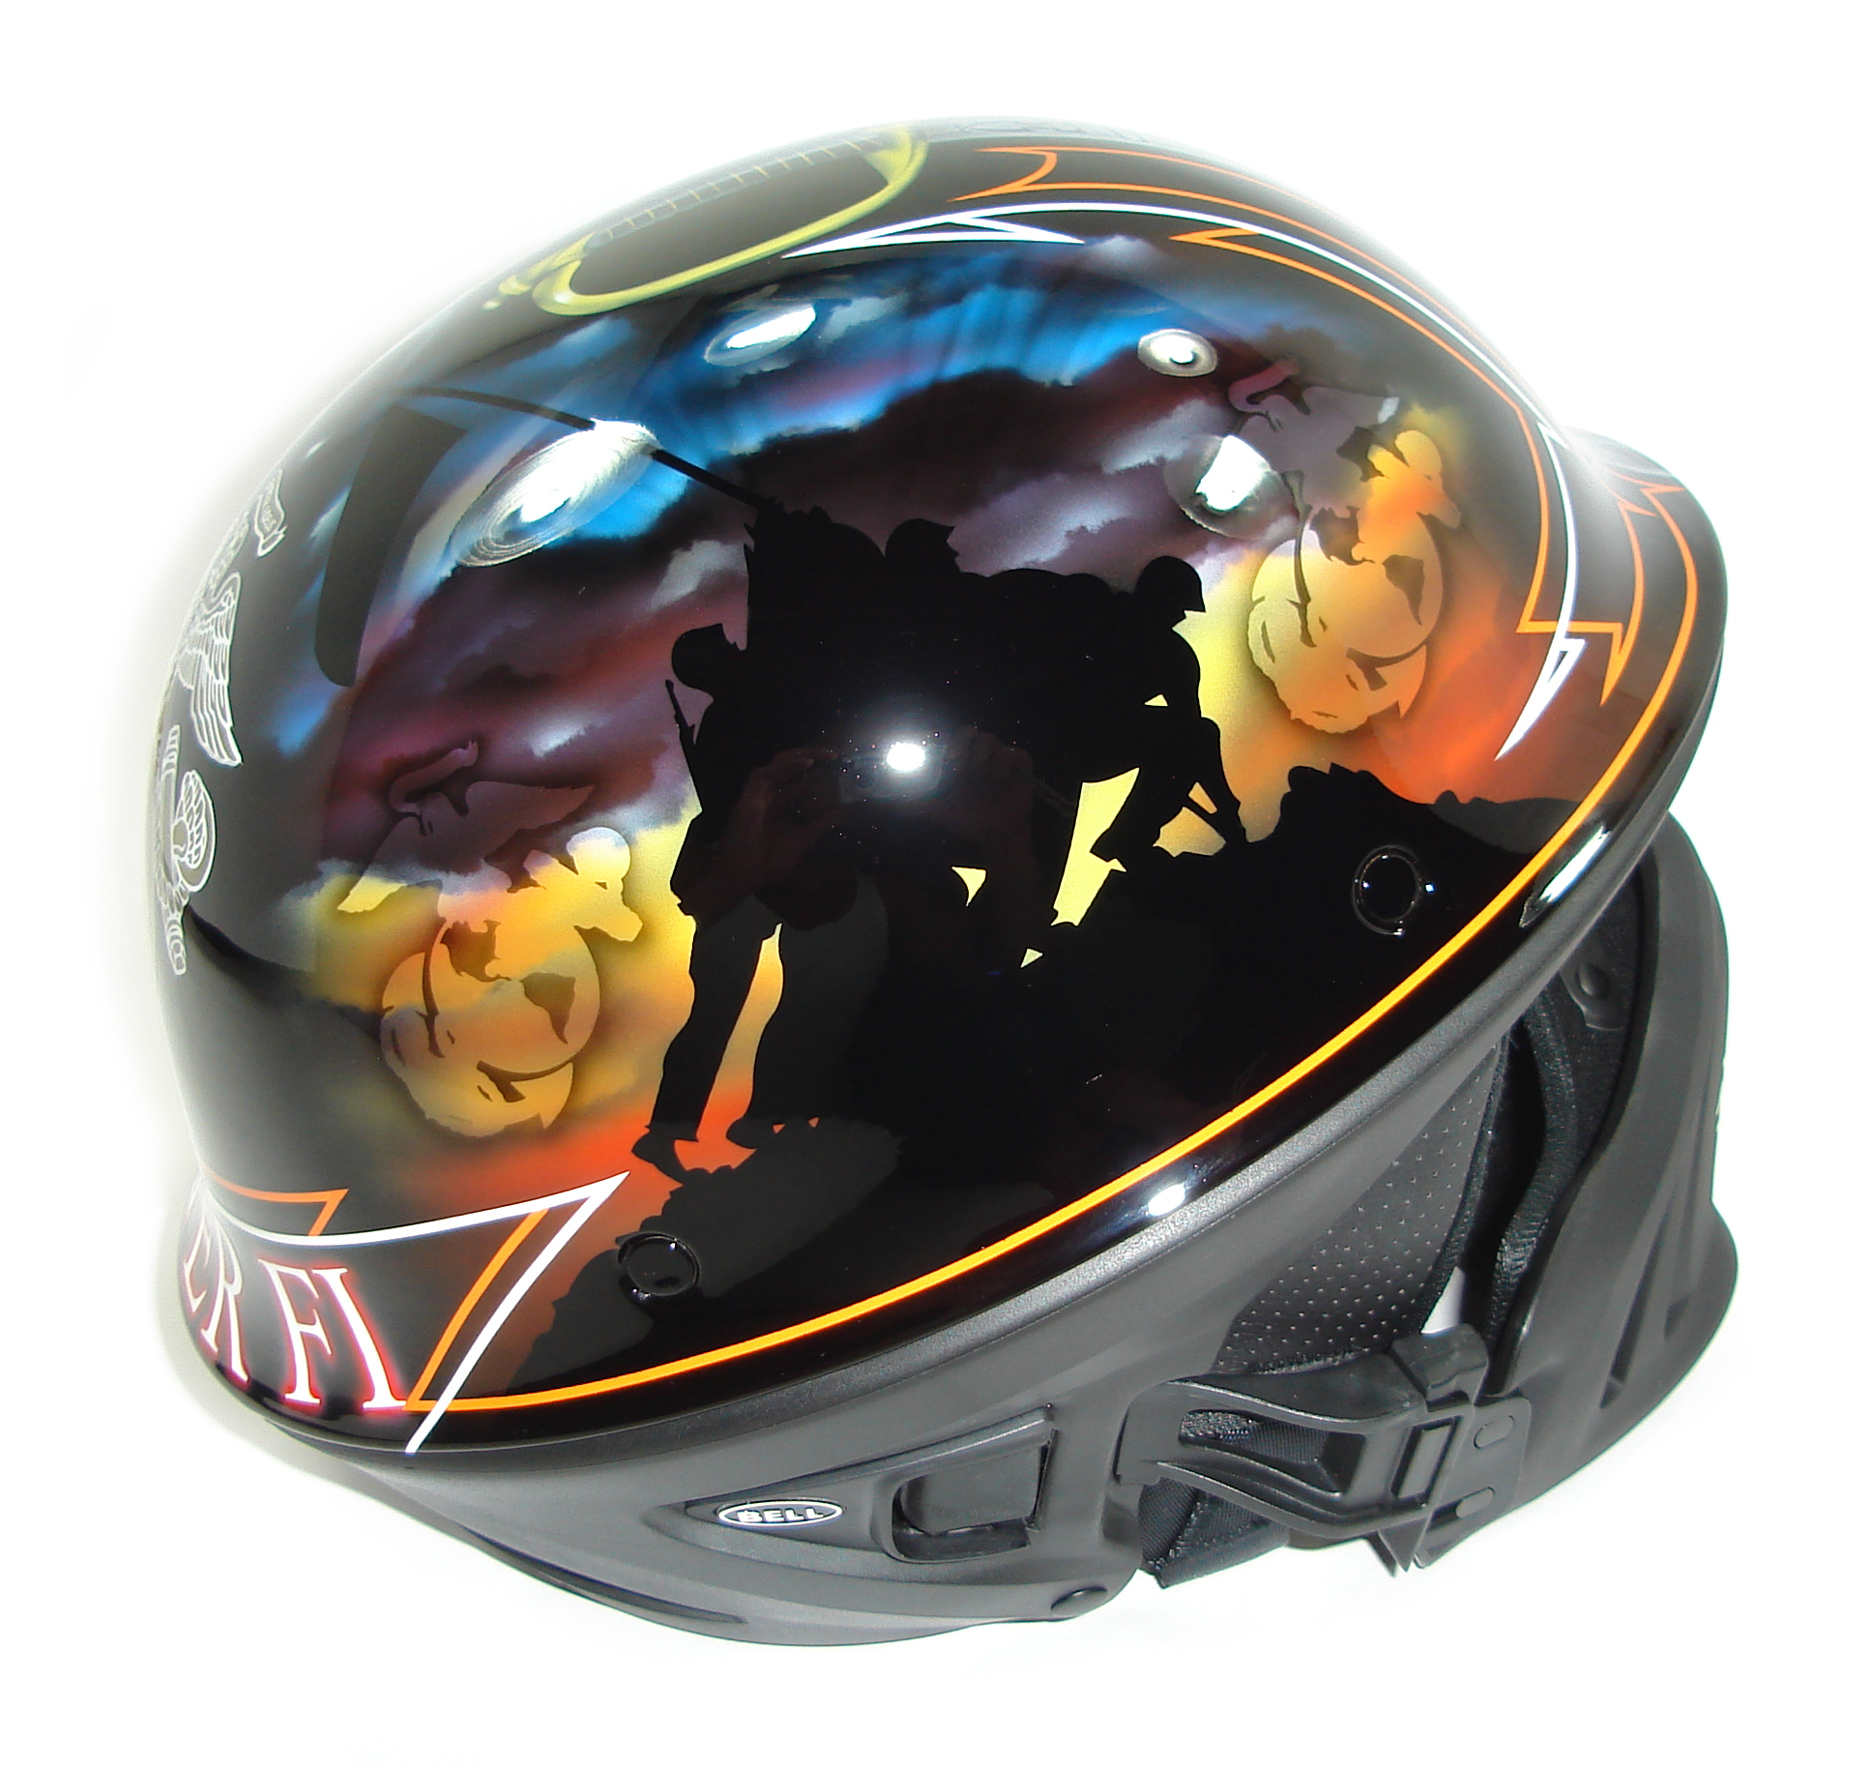 Bell Motorcycle Helmet >> Custom Painted Helmet Gallery - USMC Custom Helmet